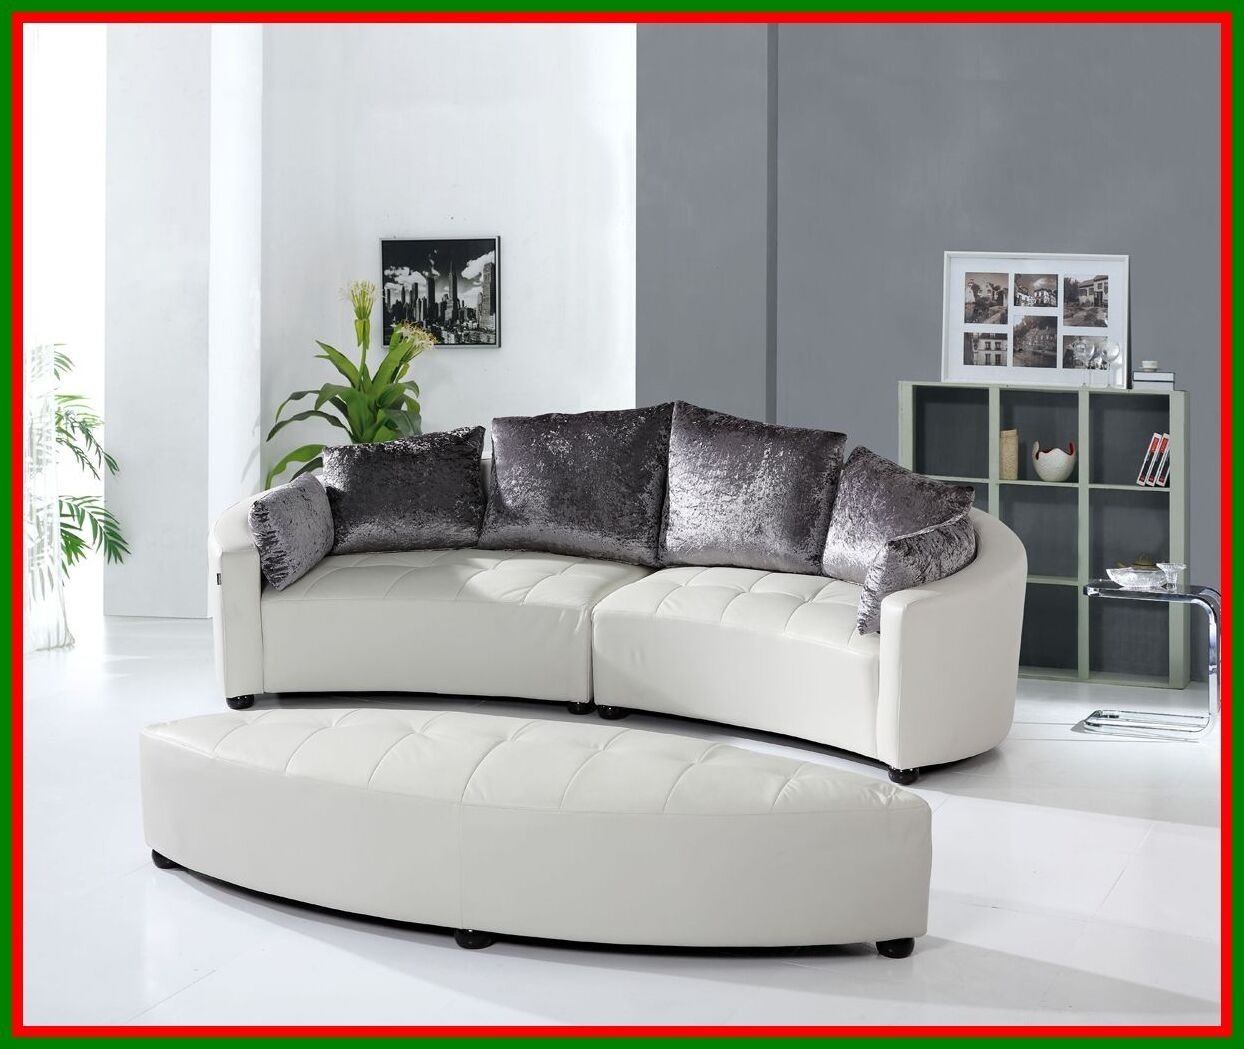 33 Reference Of Small Curved Sofa For Bay Window Uk Curved Sofa Small Curved Sofa Pinterest Living Room